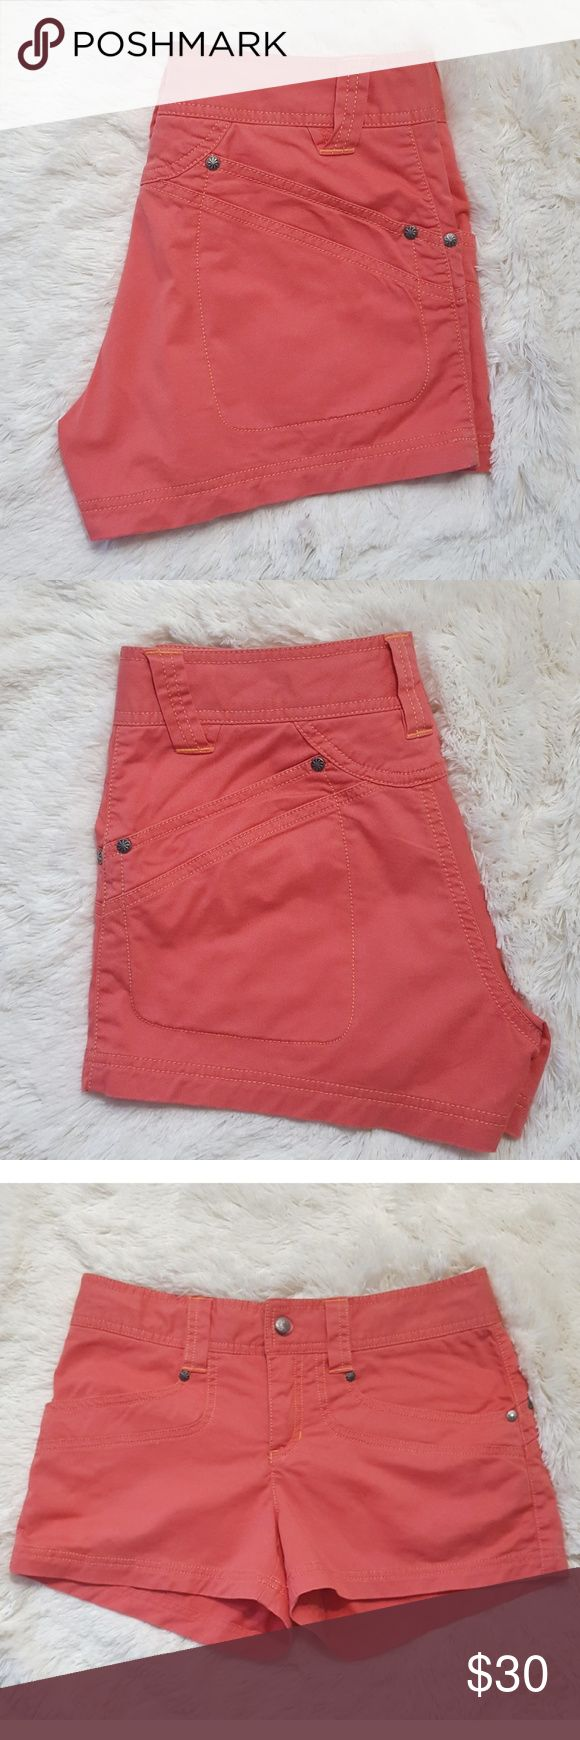 """Athleta Cotton Denim Mini Shorts These coral cotton shorts from Athleta are perfect for the summer. Throw them on with a cute top and sandals and you have a perfect summer casual look. Wear them to the beach or pool to cover up your bathing suit. Zip and snap closure with inside string. 3"""" inseam. Athleta Shorts"""